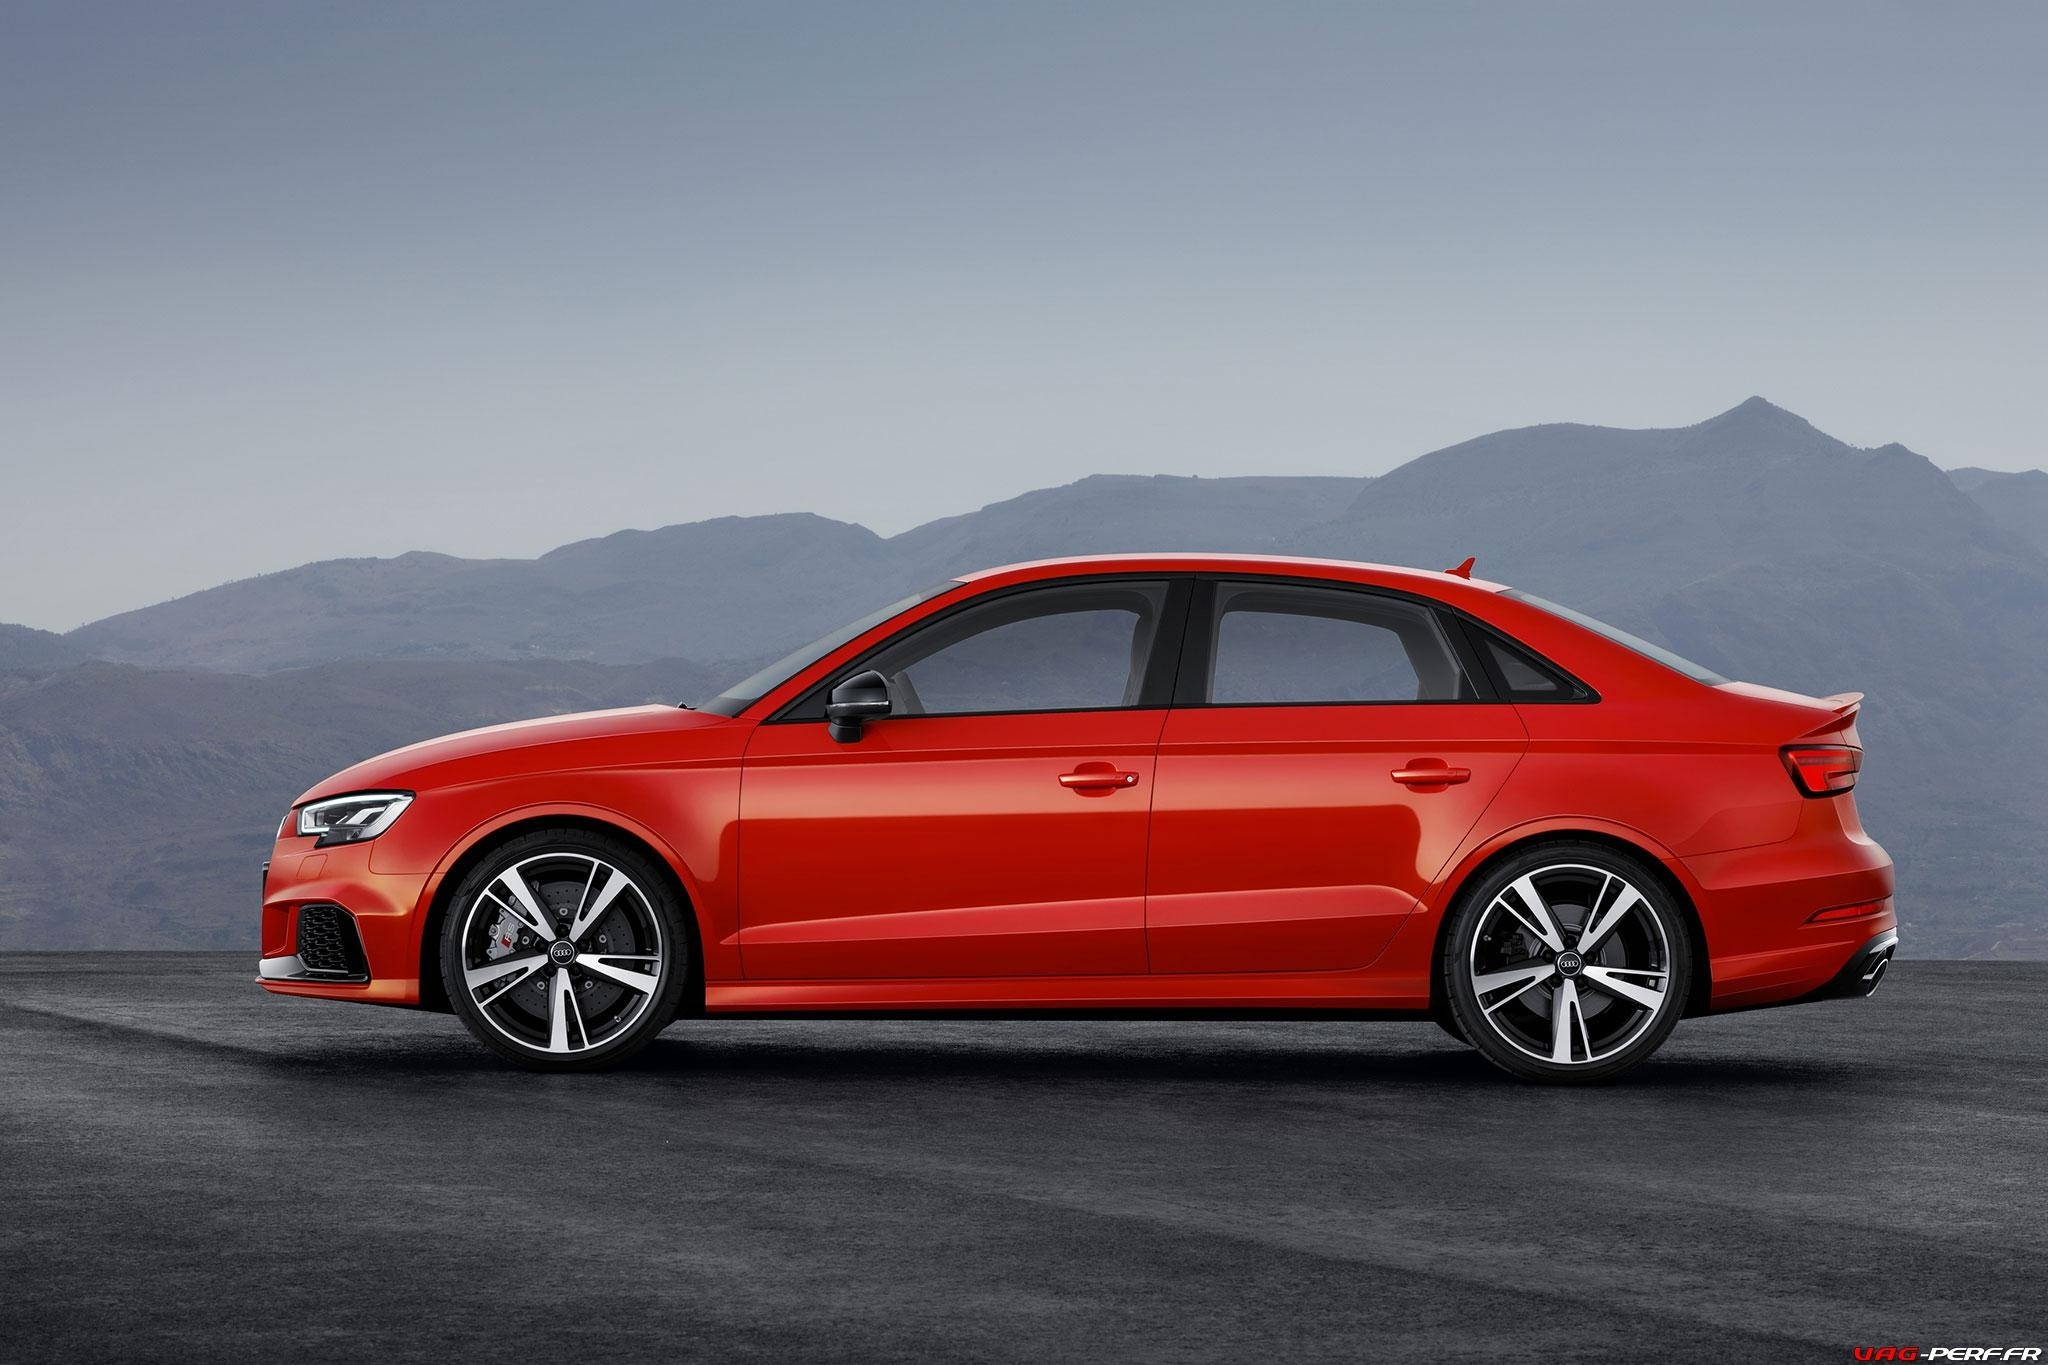 2016_Audi-RS3-Sedan-Officiel_08